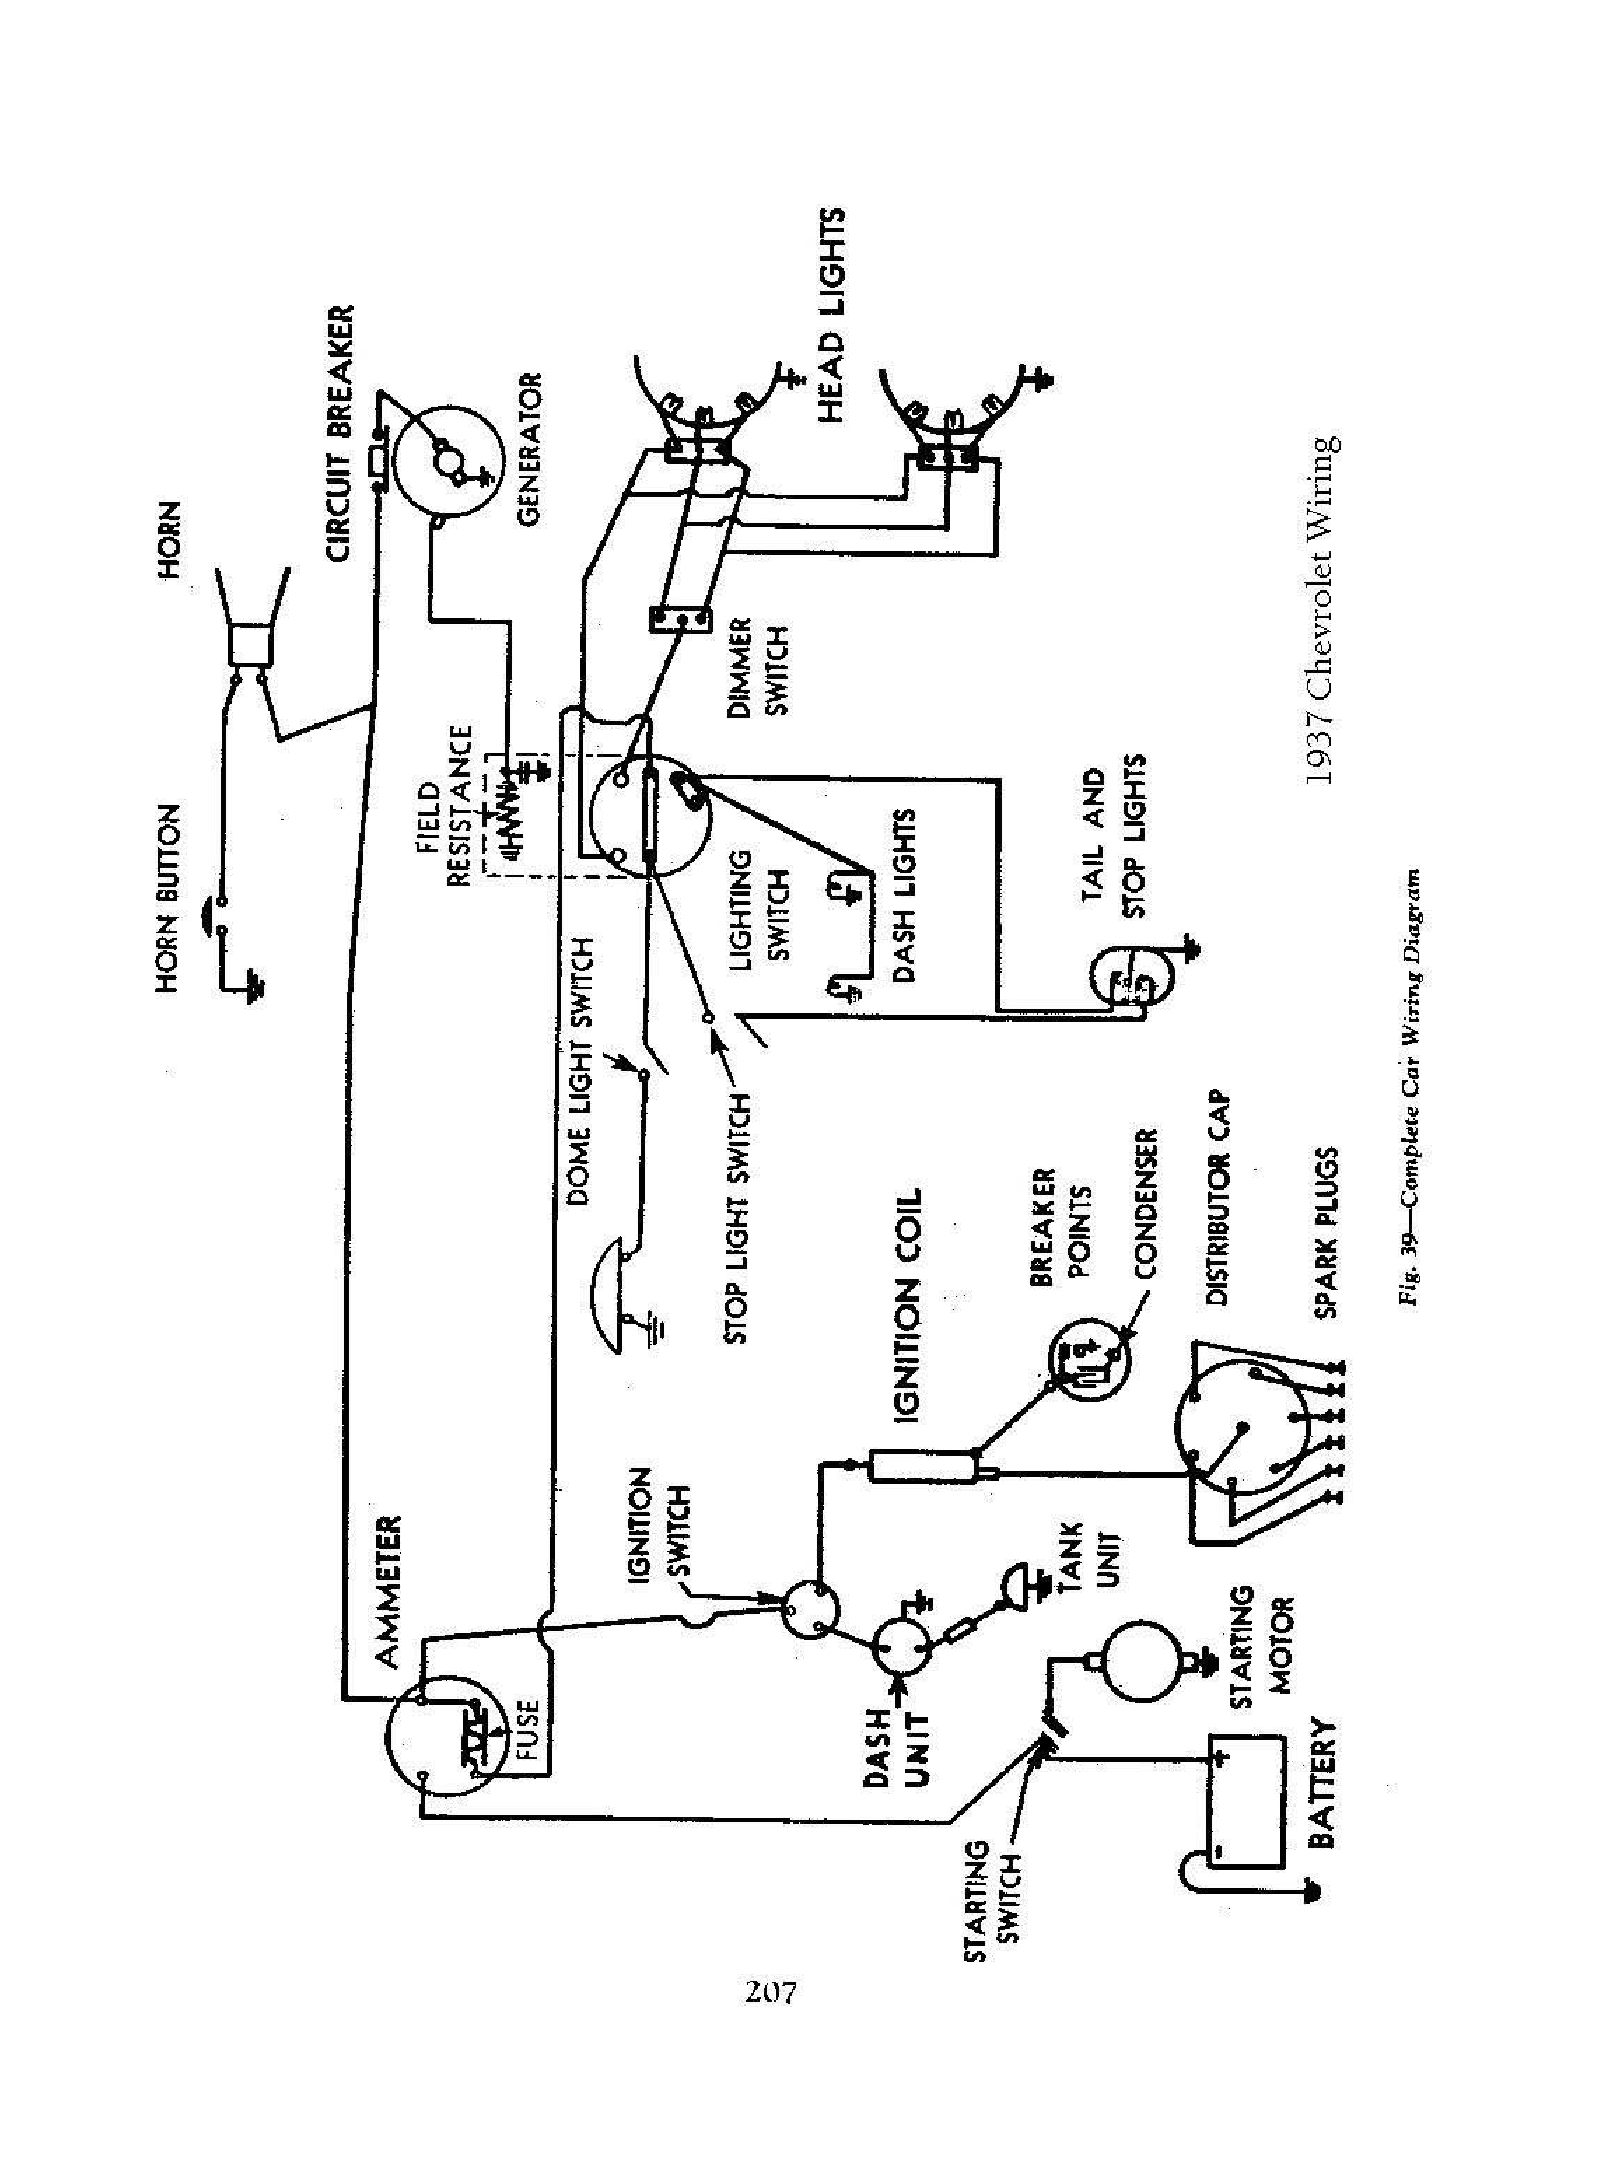 hight resolution of car circuit breaker wiring diagram wiring library 1937 passenger car wiring chevy wiring diagrams